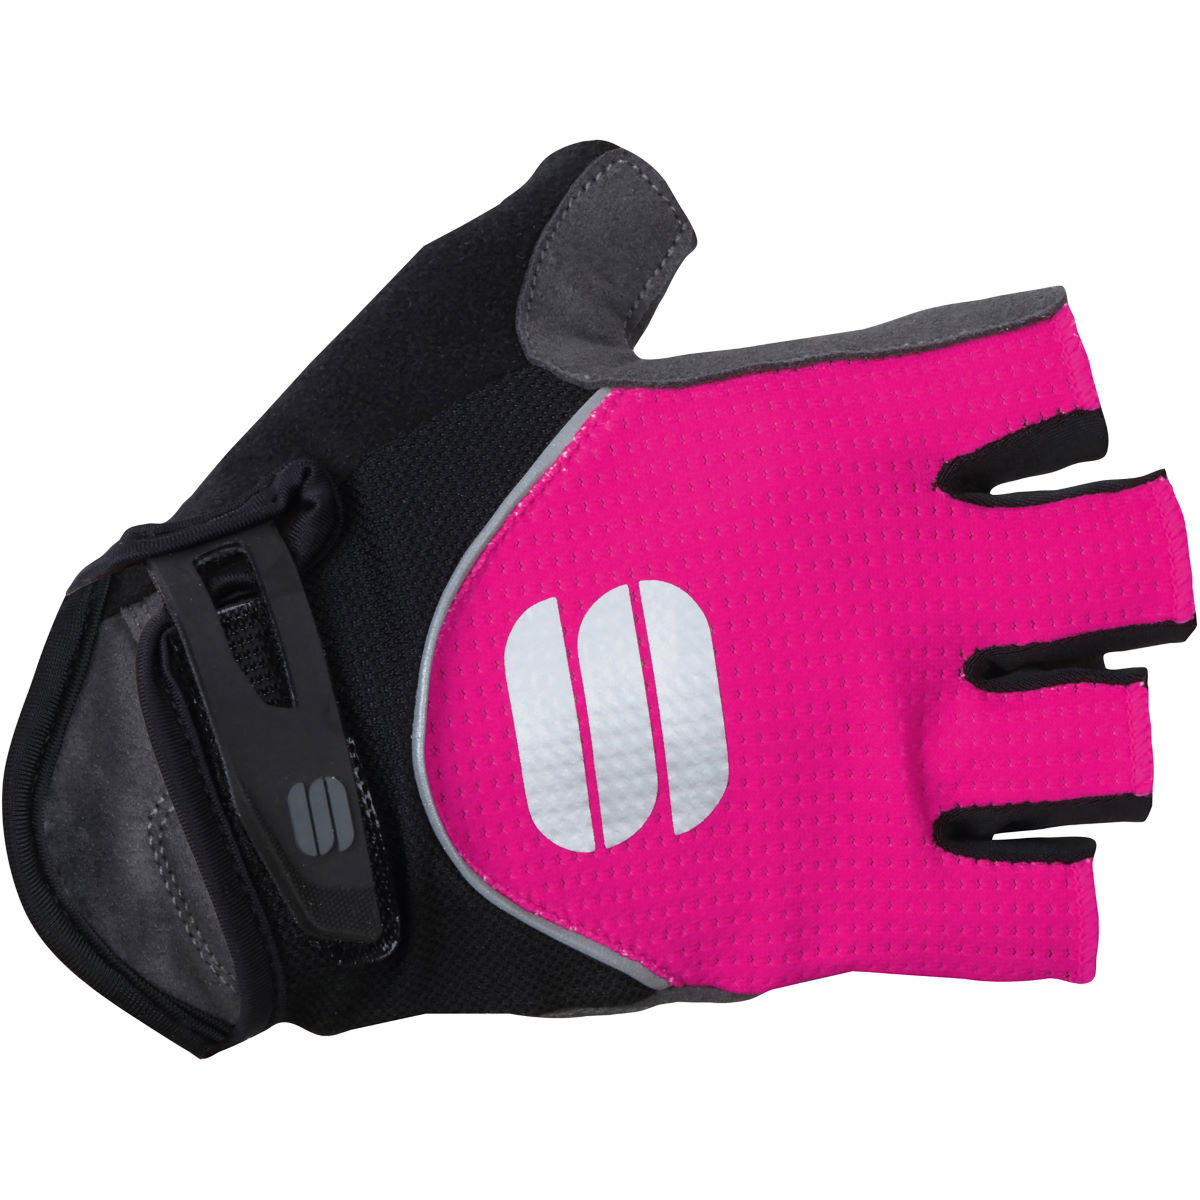 Sportful Womens Neo Cycling Gloves - S Pink/black  Gloves